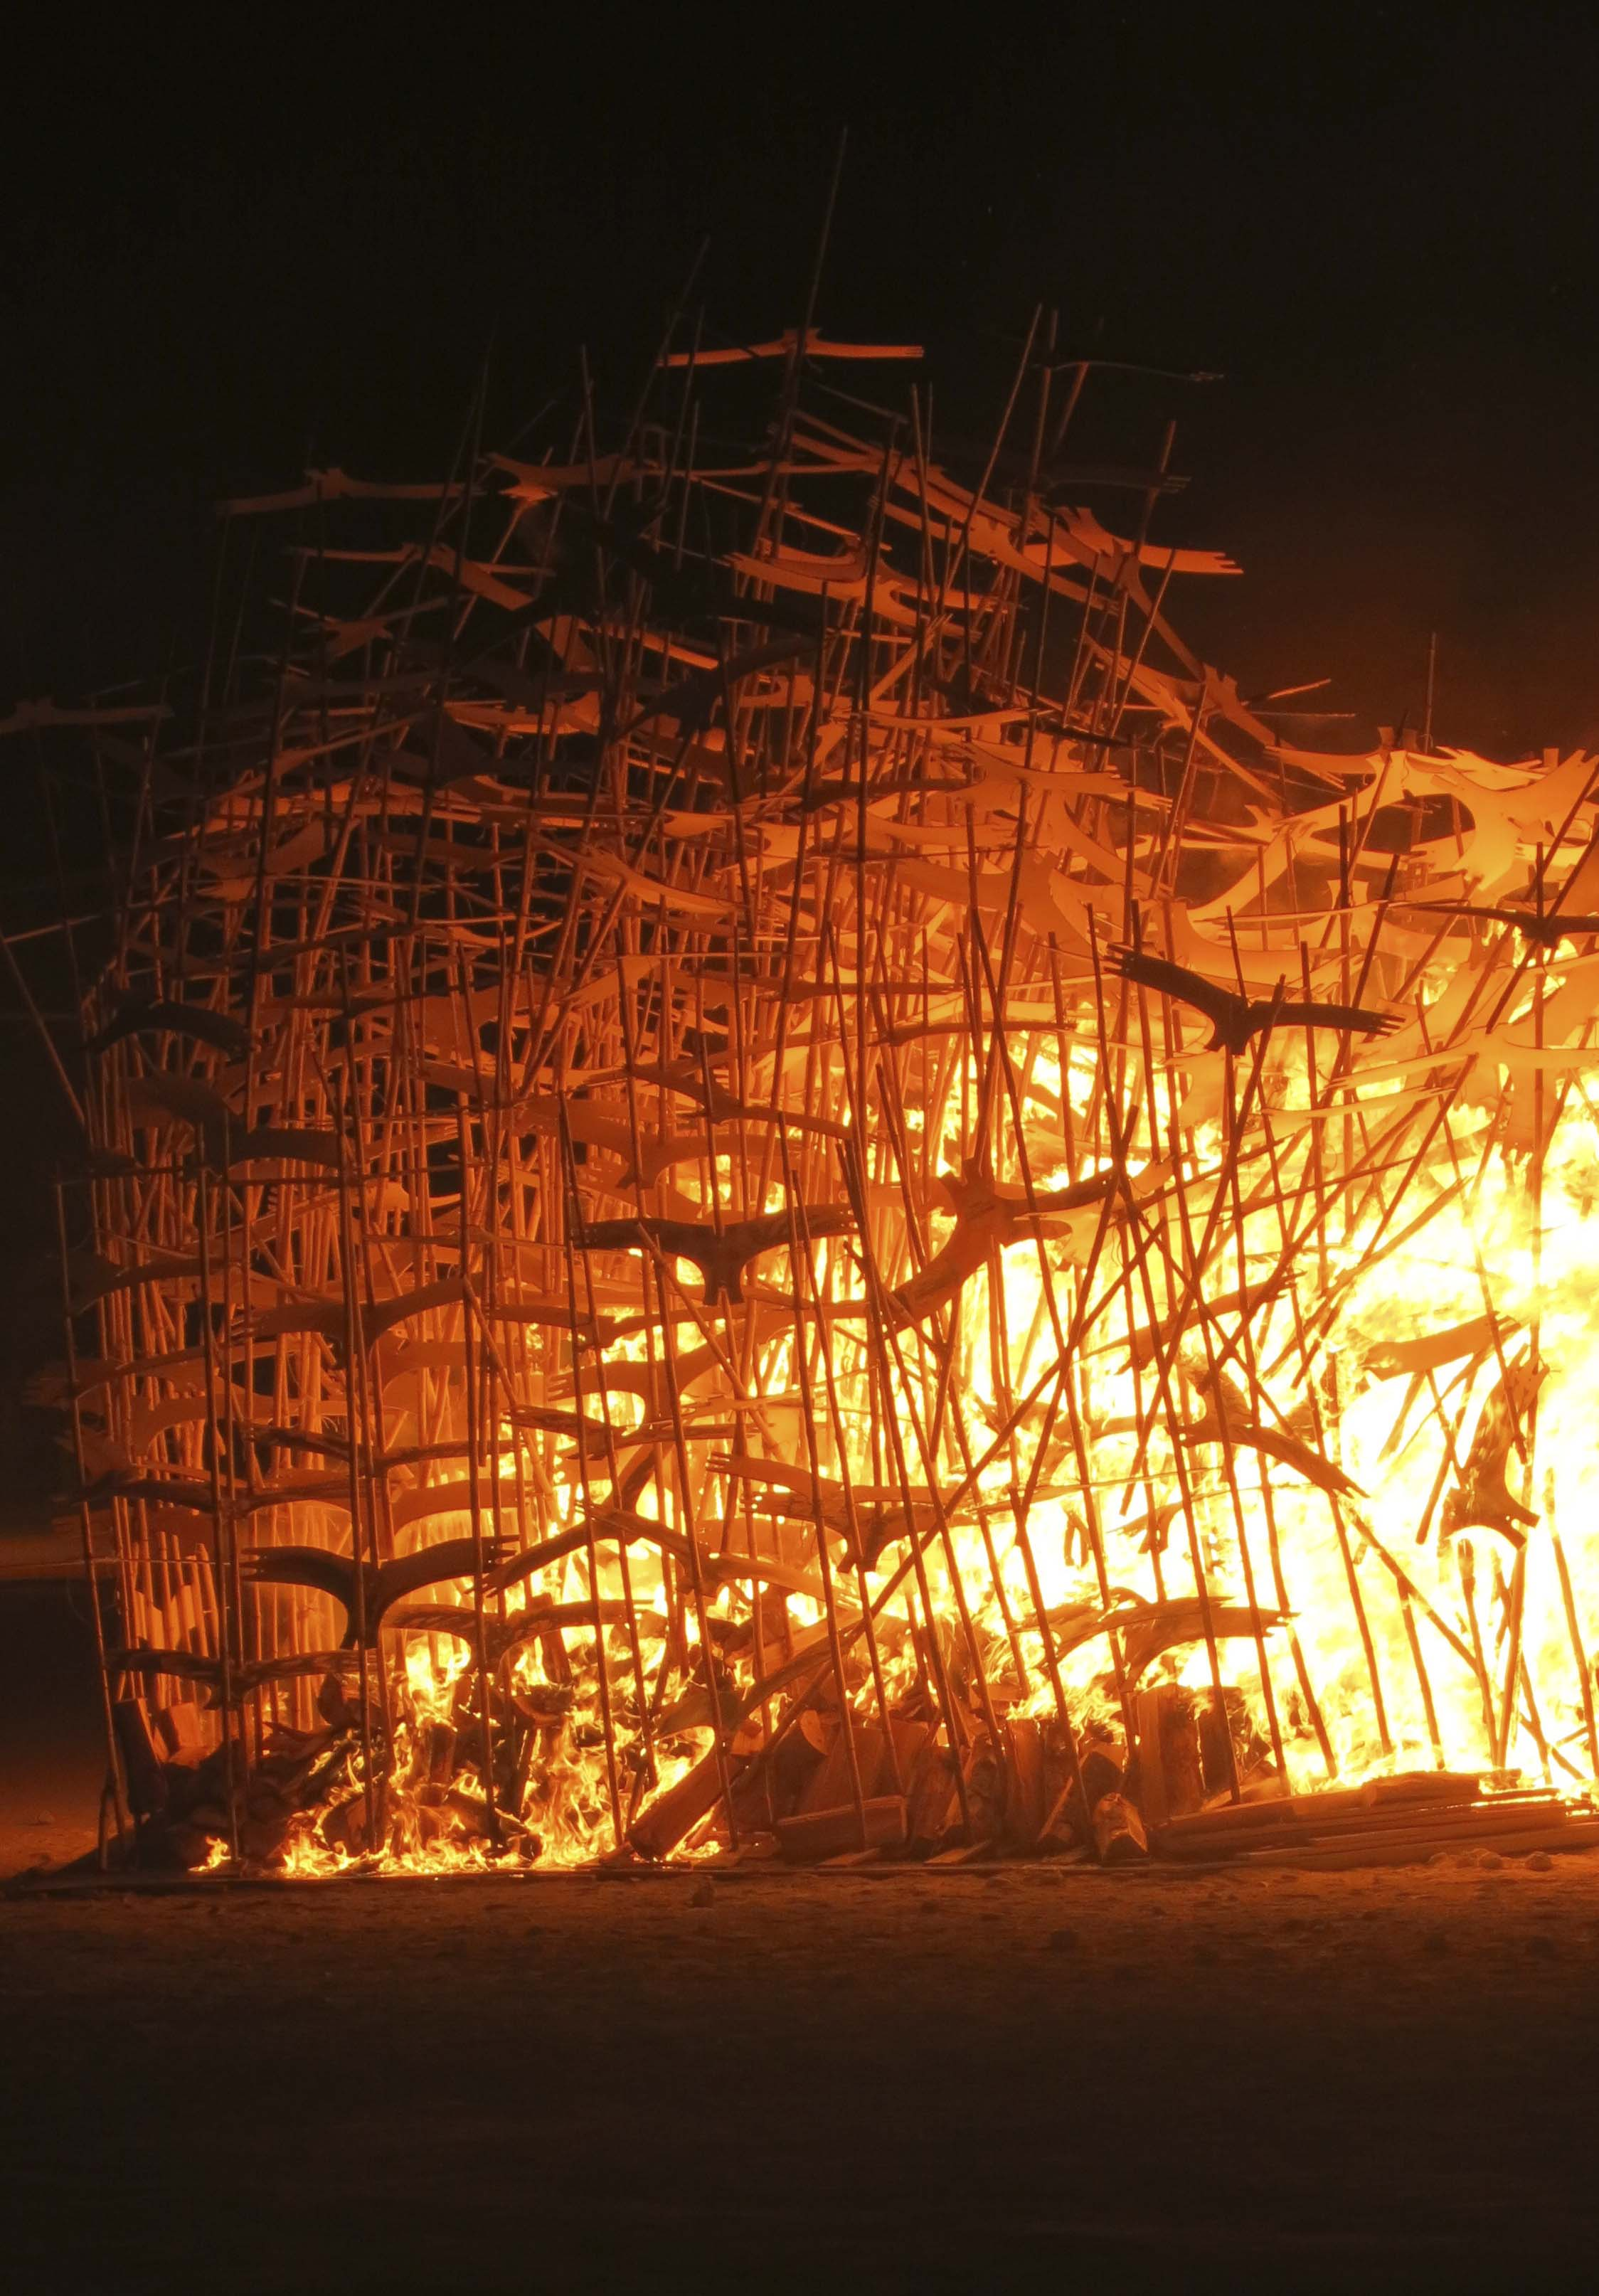 Burning of Lithuania's regional art at Burning Man 2013.